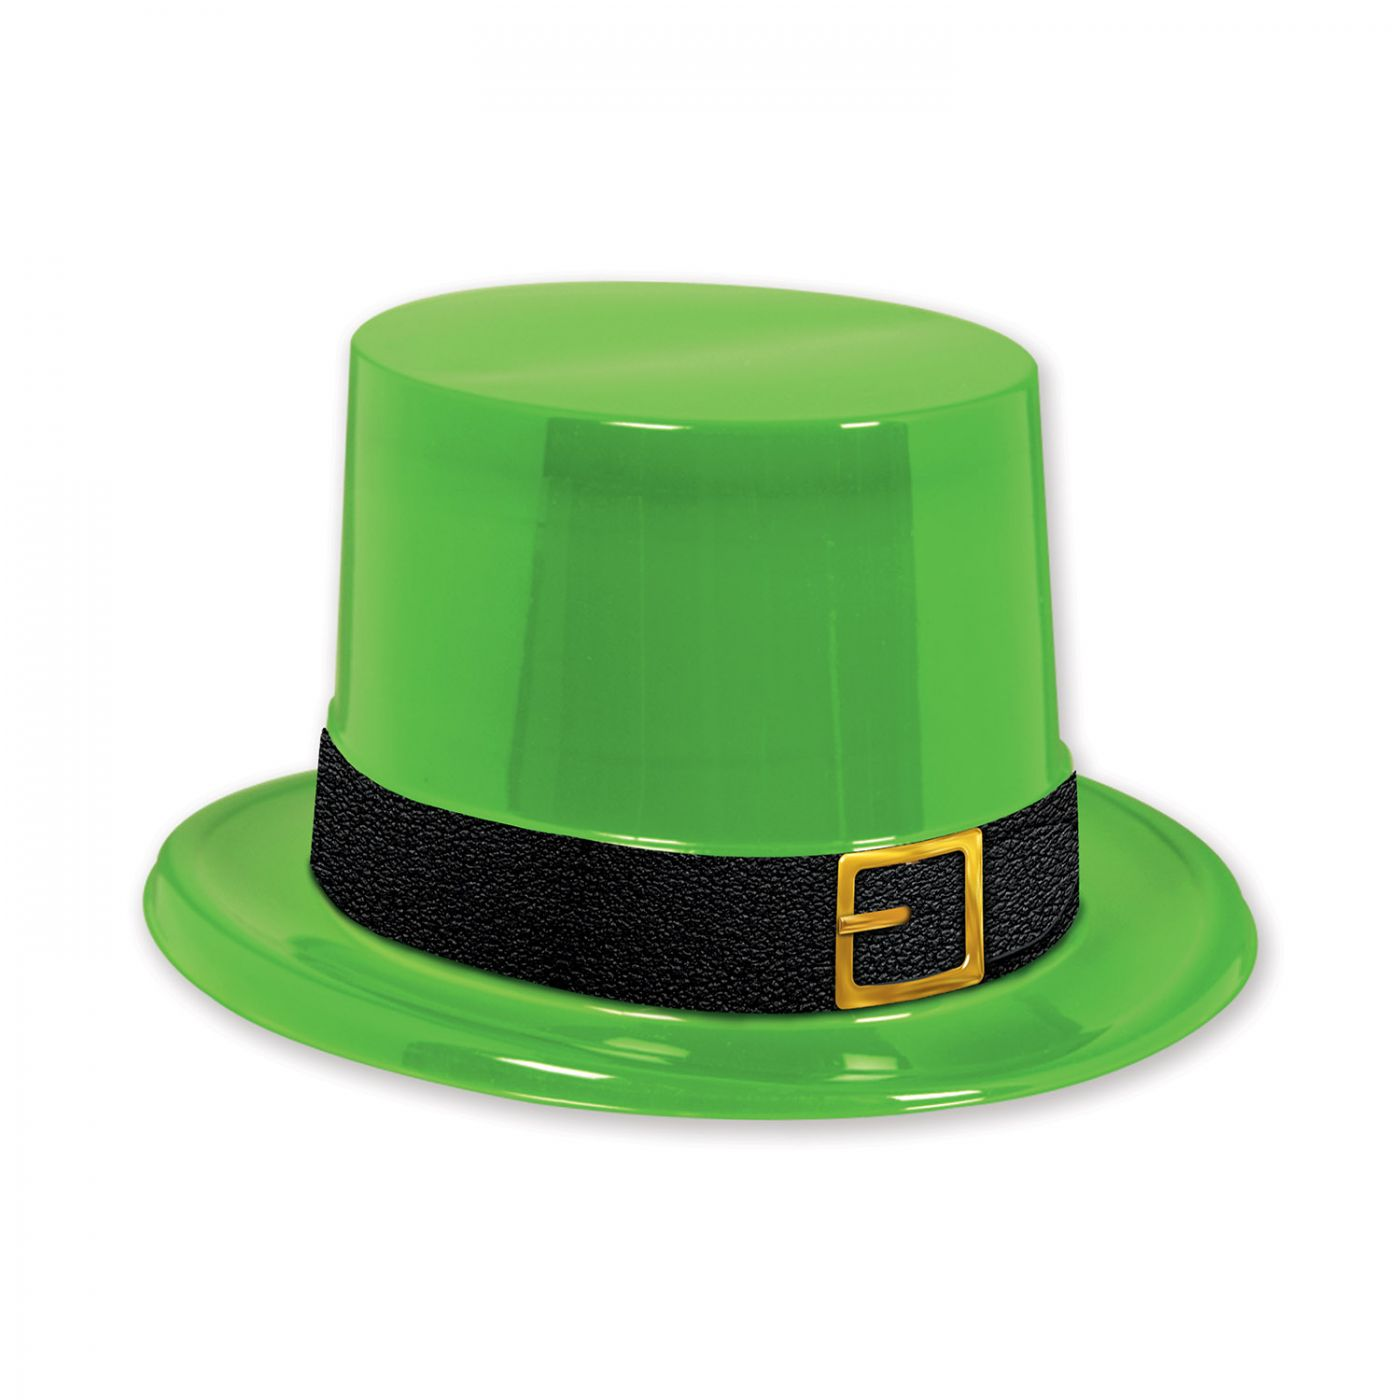 Plastic Leprechaun Top Hat (25) image